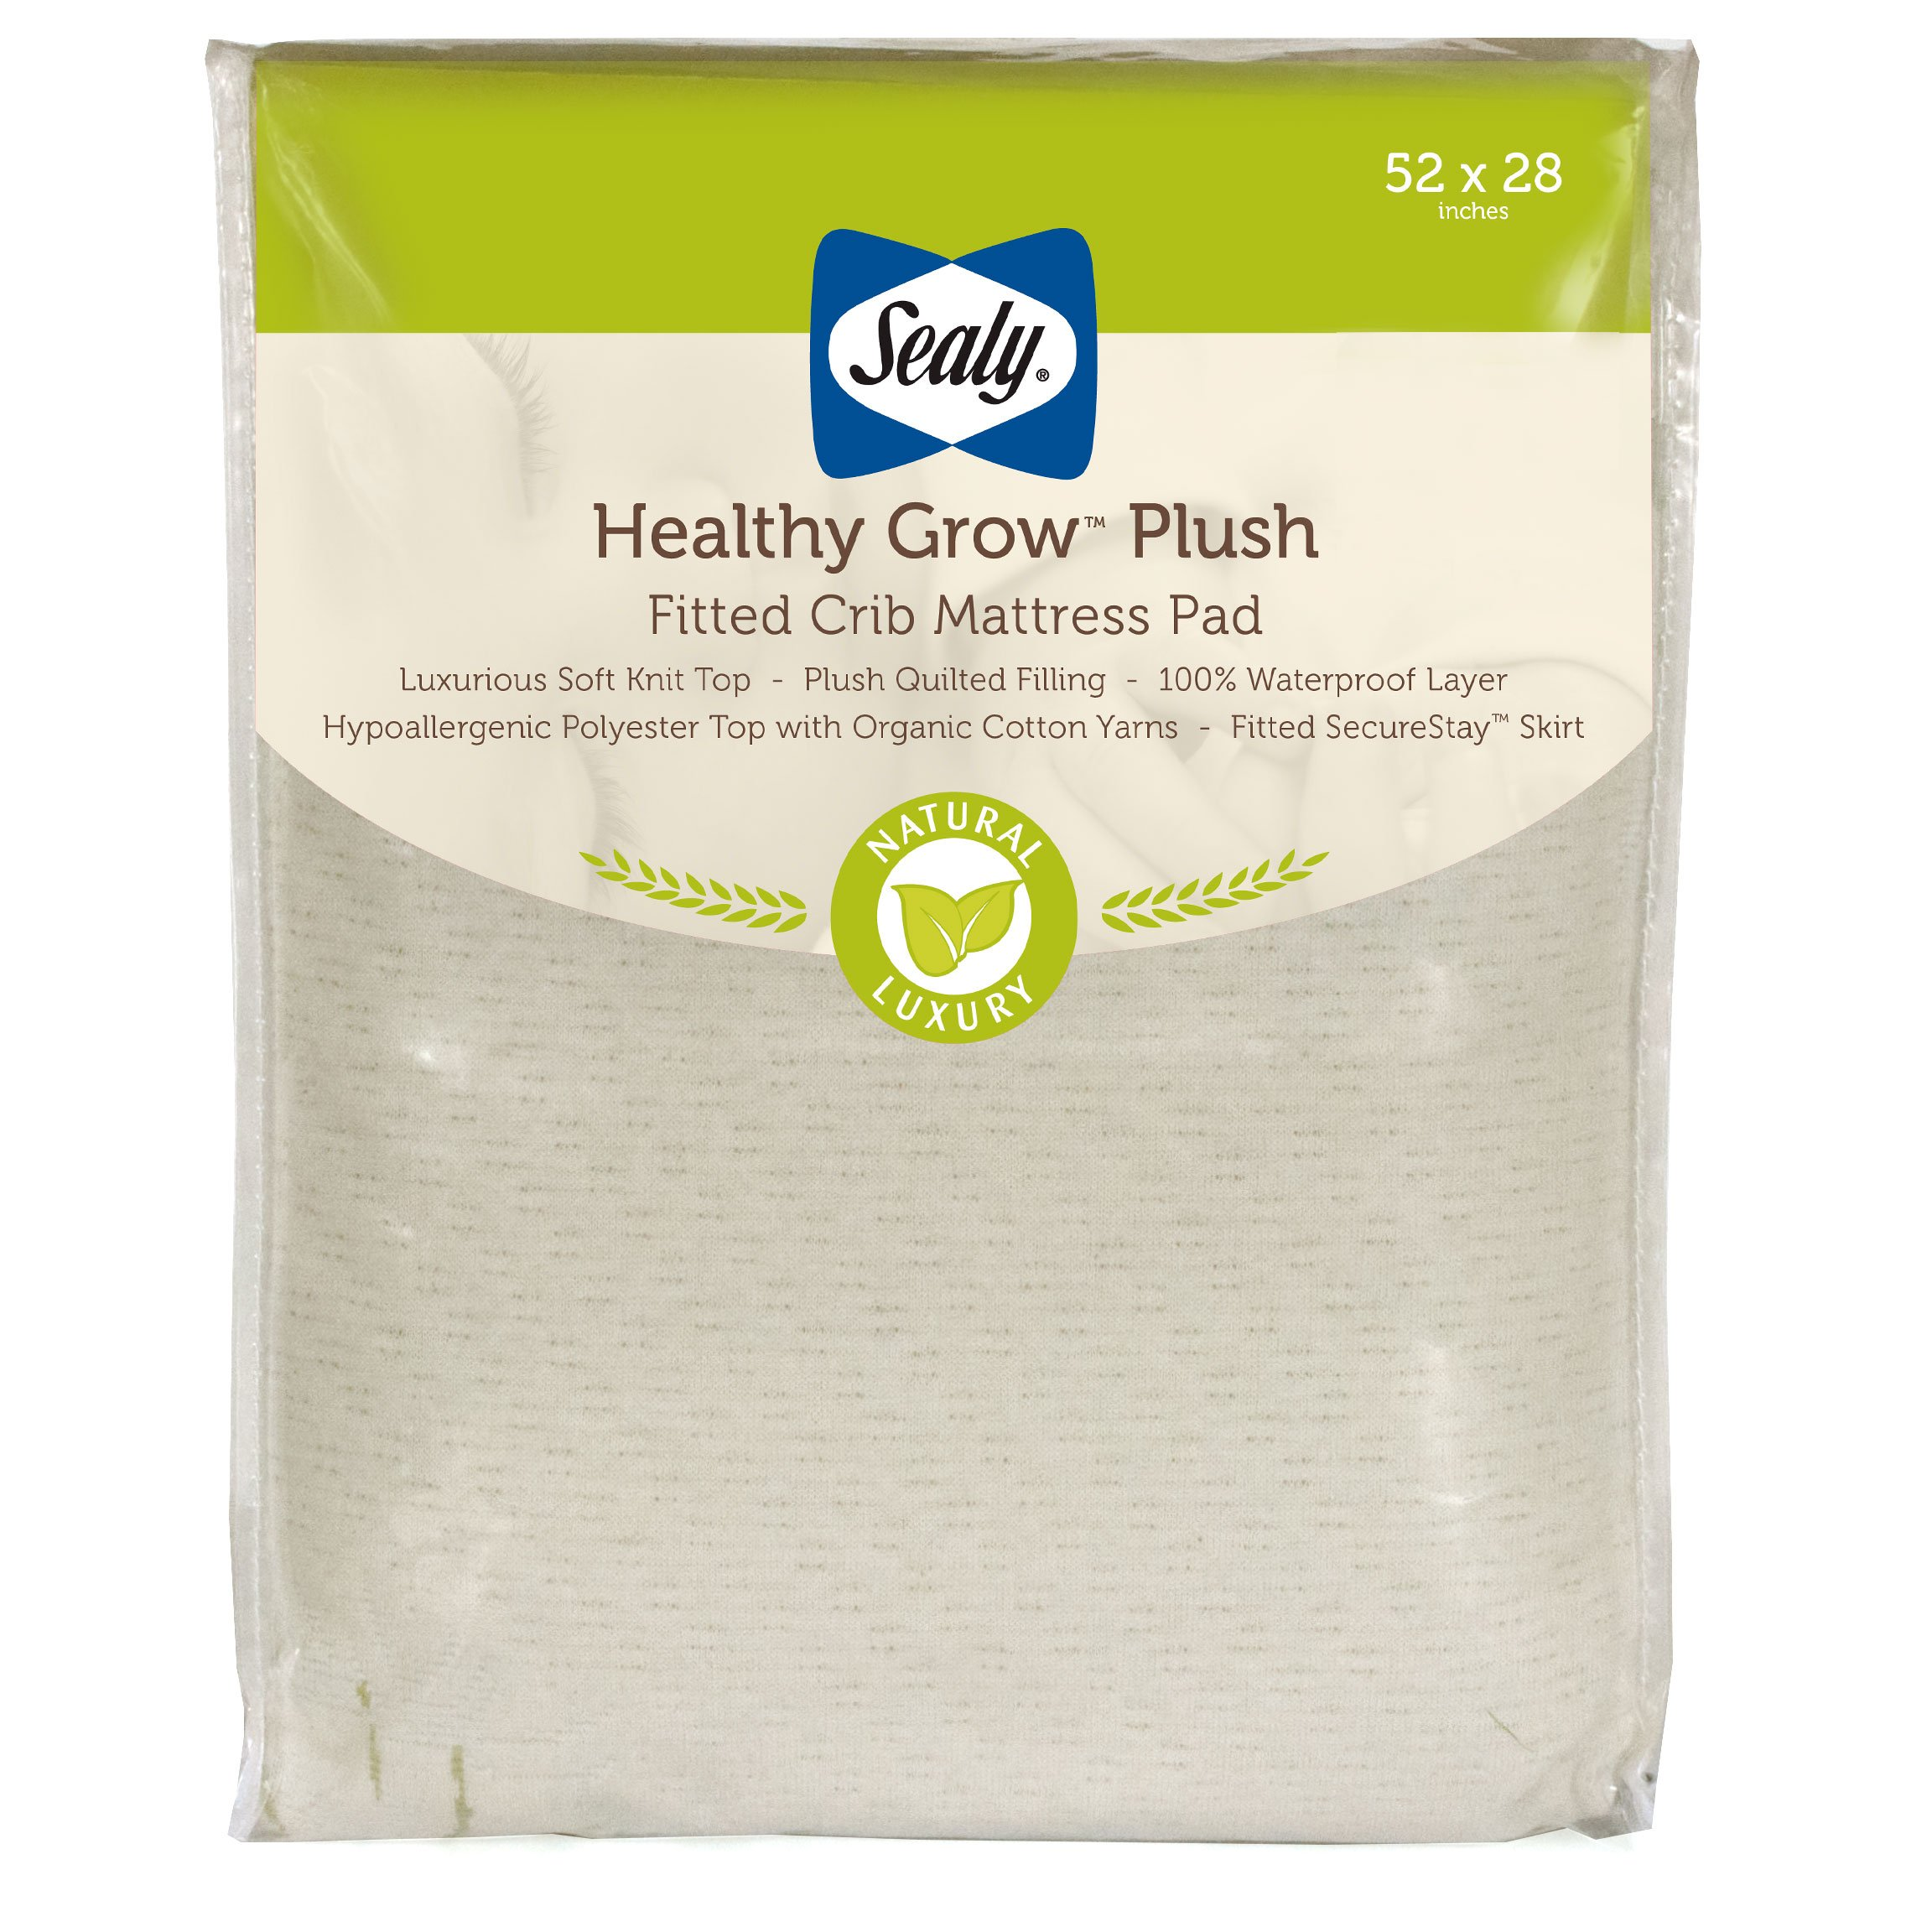 Sealy Healthy Grow Plush Infant/Toddler Waterproof Fitted Crib Mattress Pad - 52'' x 28'' by Sealy